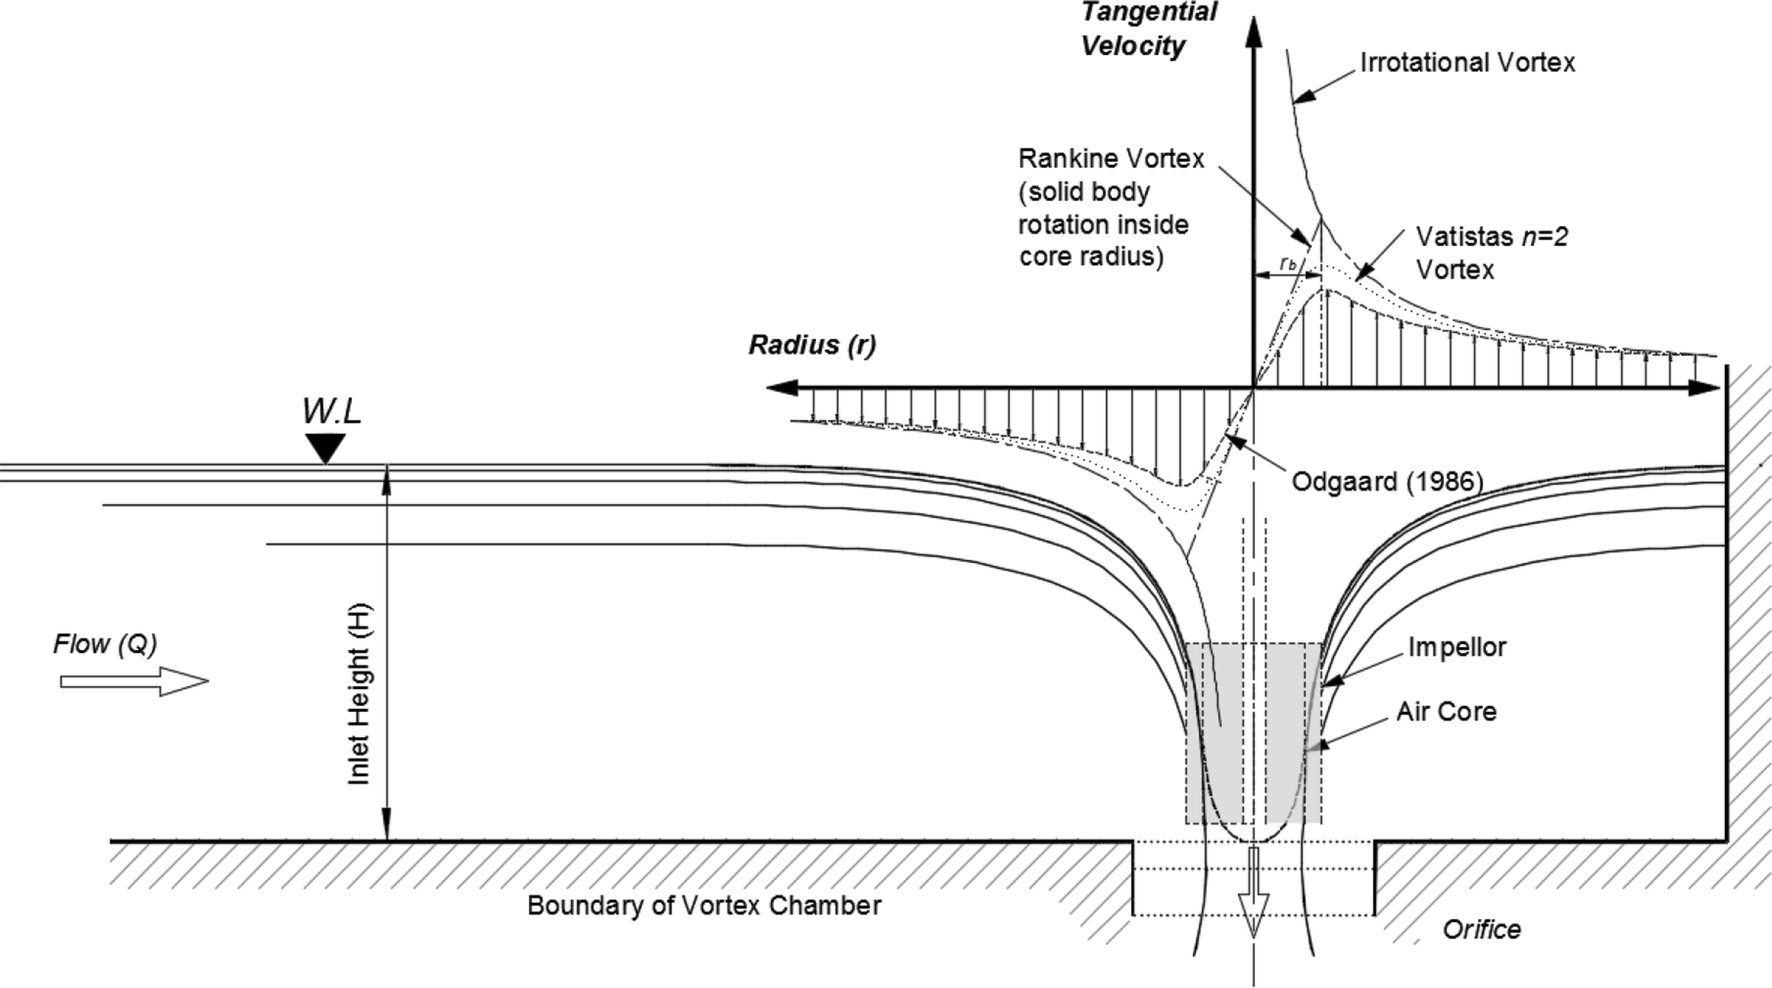 Water vortex hydropower technology: a state-of-the-art